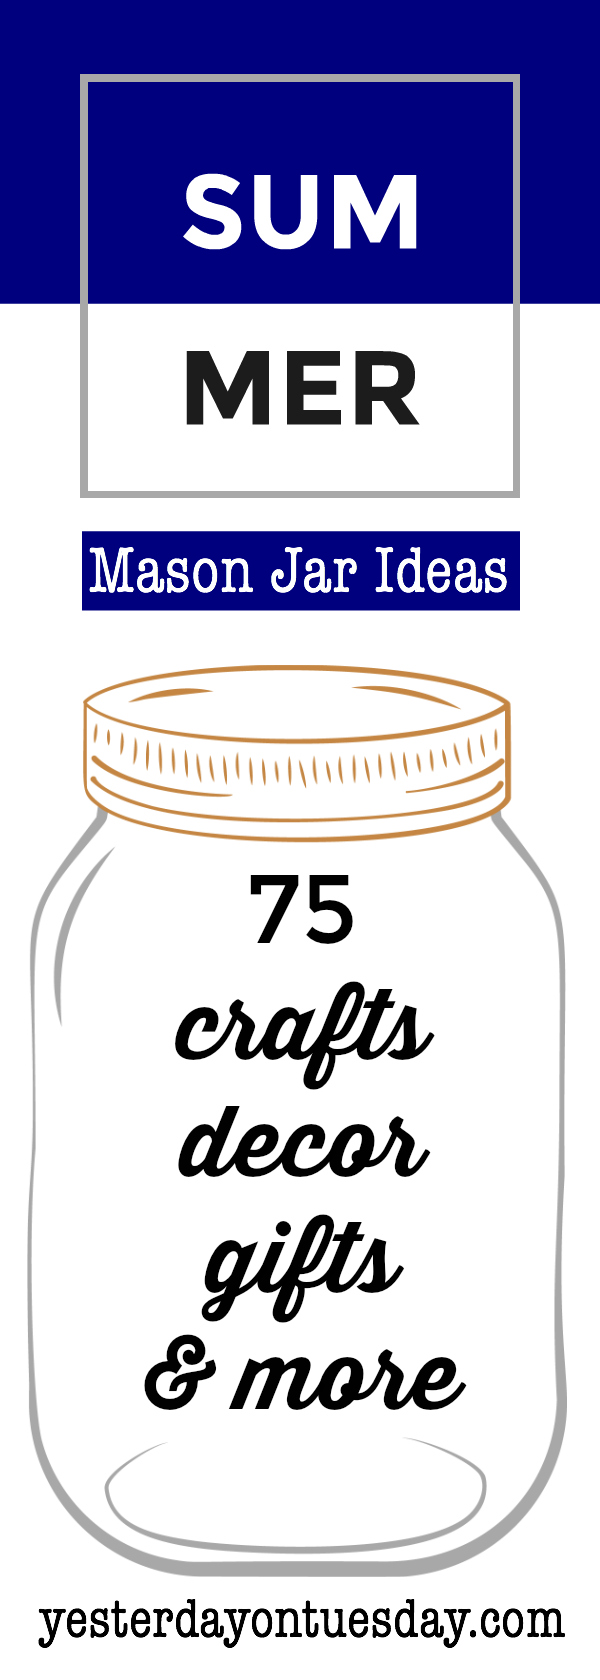 75 Summer Mason Jar Ideas including kid's activities, crafts, decor, recipes and more!